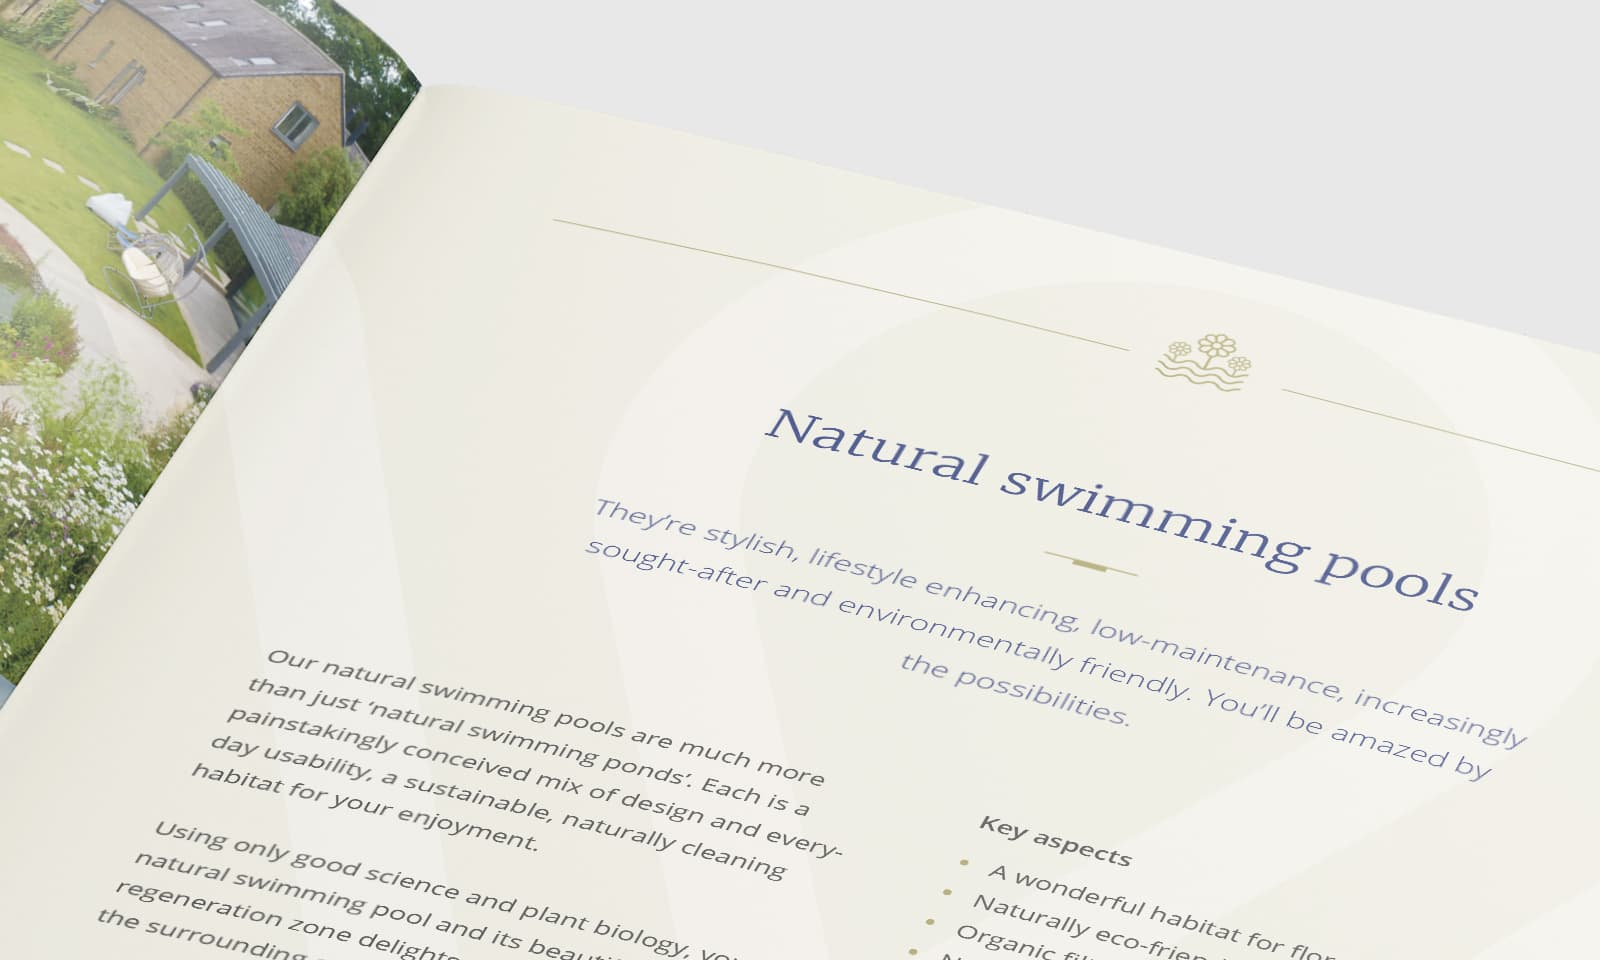 William Curtis brochure natural swimming pools page close up